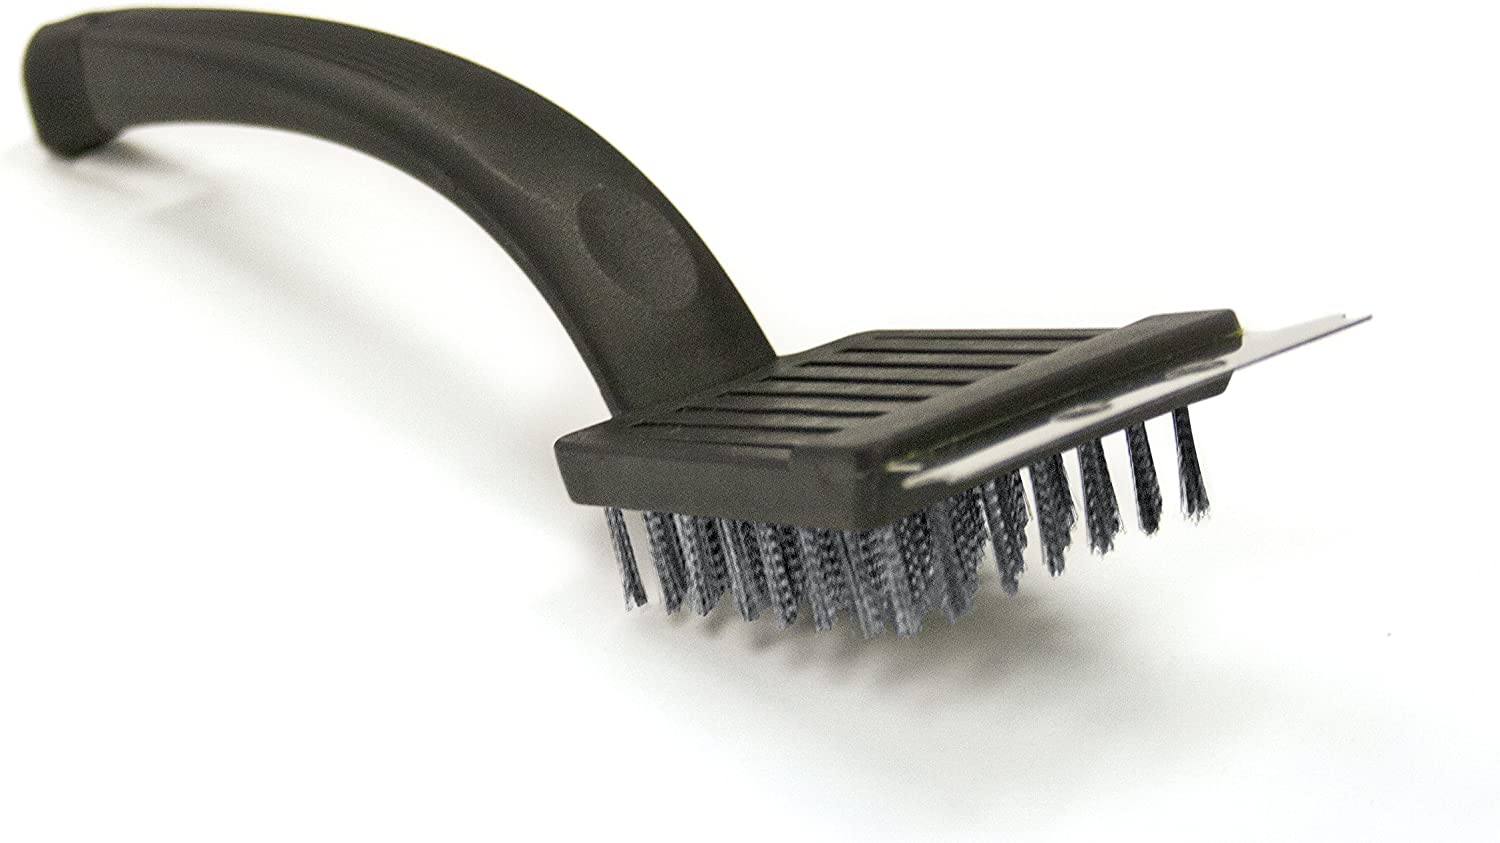 """Grillpro 70255 18/"""" Grill Brush With Heavy Duty Hardwood Handle"""